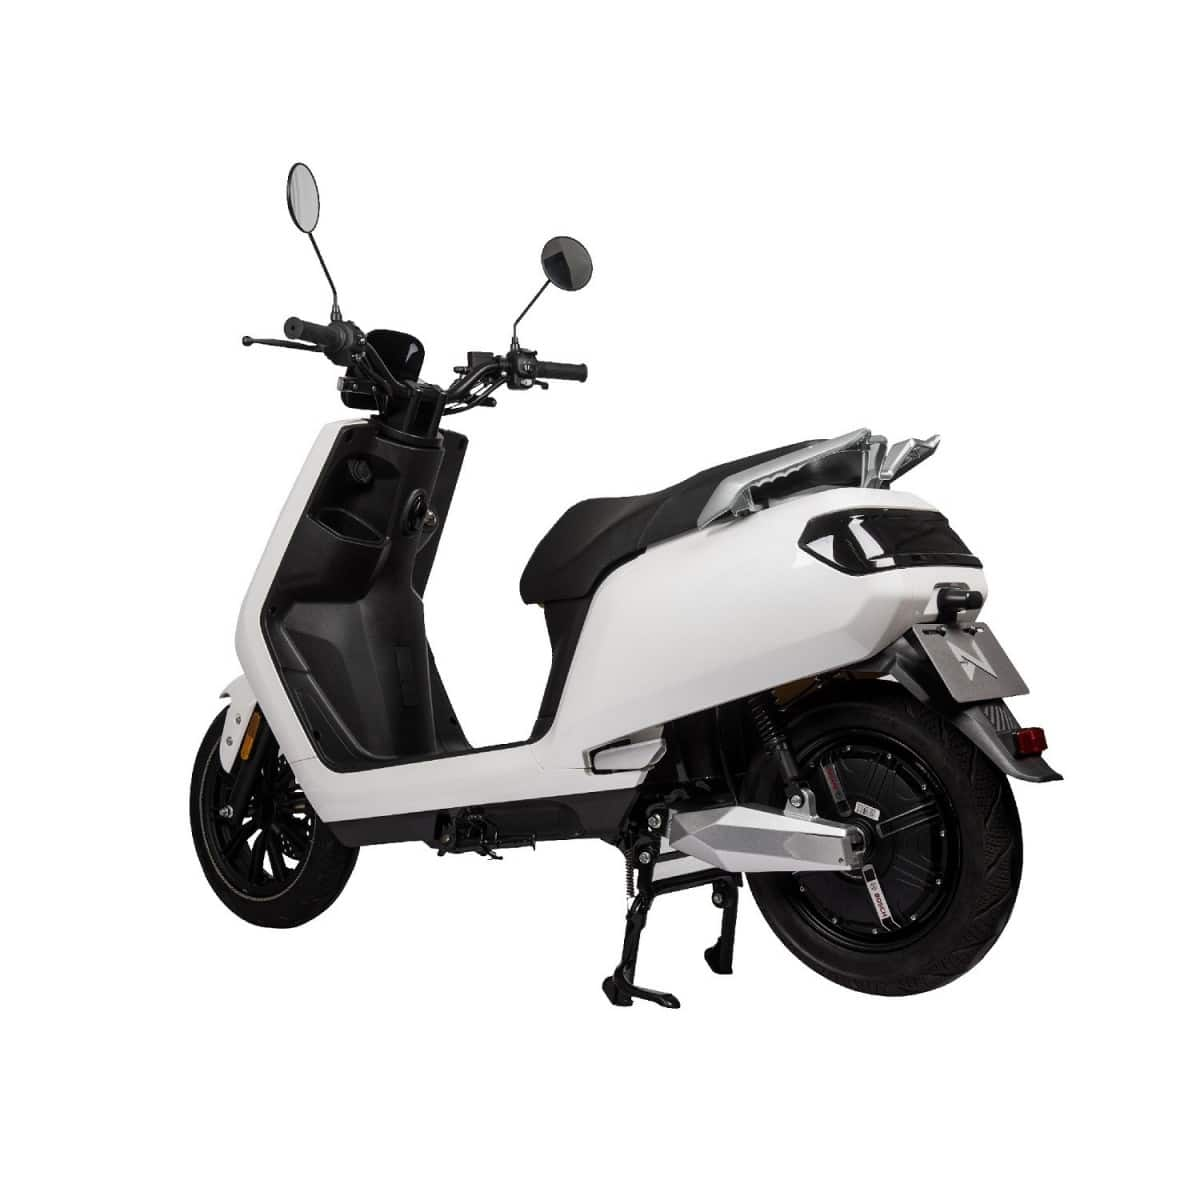 lve s5 le scooter electrique premium petit prix by. Black Bedroom Furniture Sets. Home Design Ideas